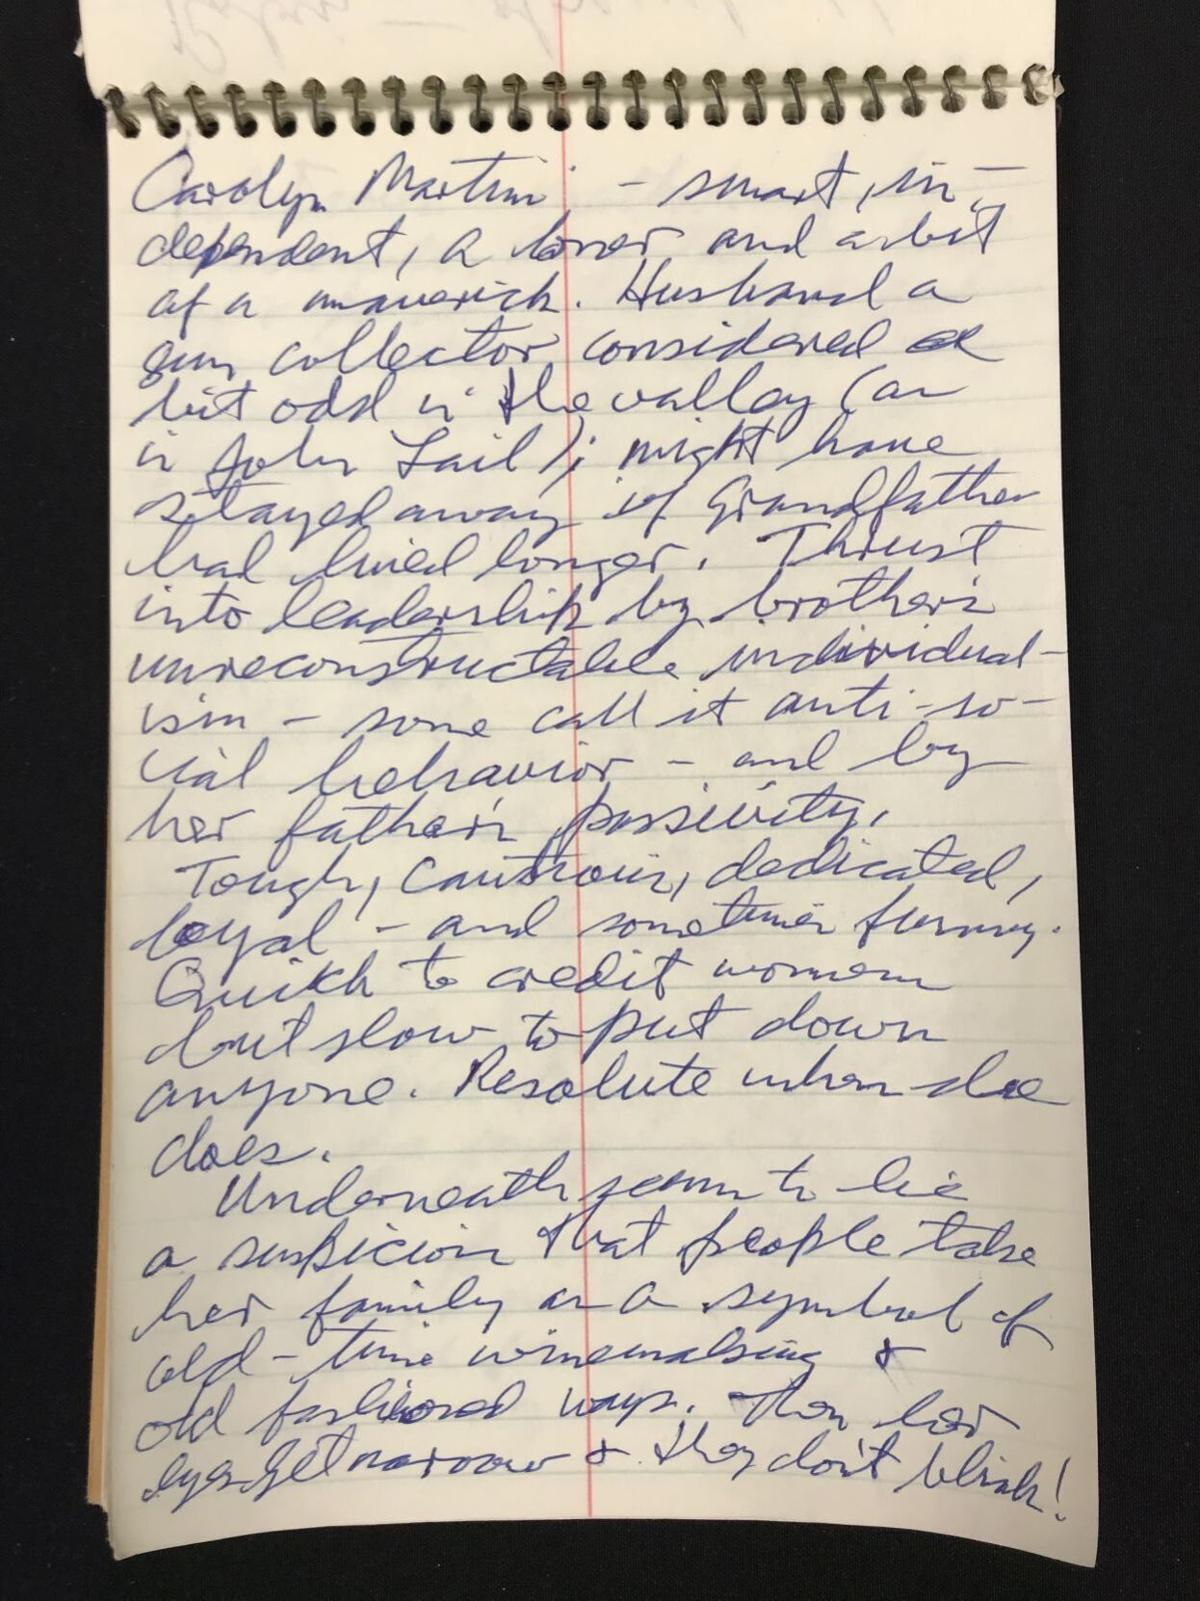 Notebook page about Carolyn Martini.jpg